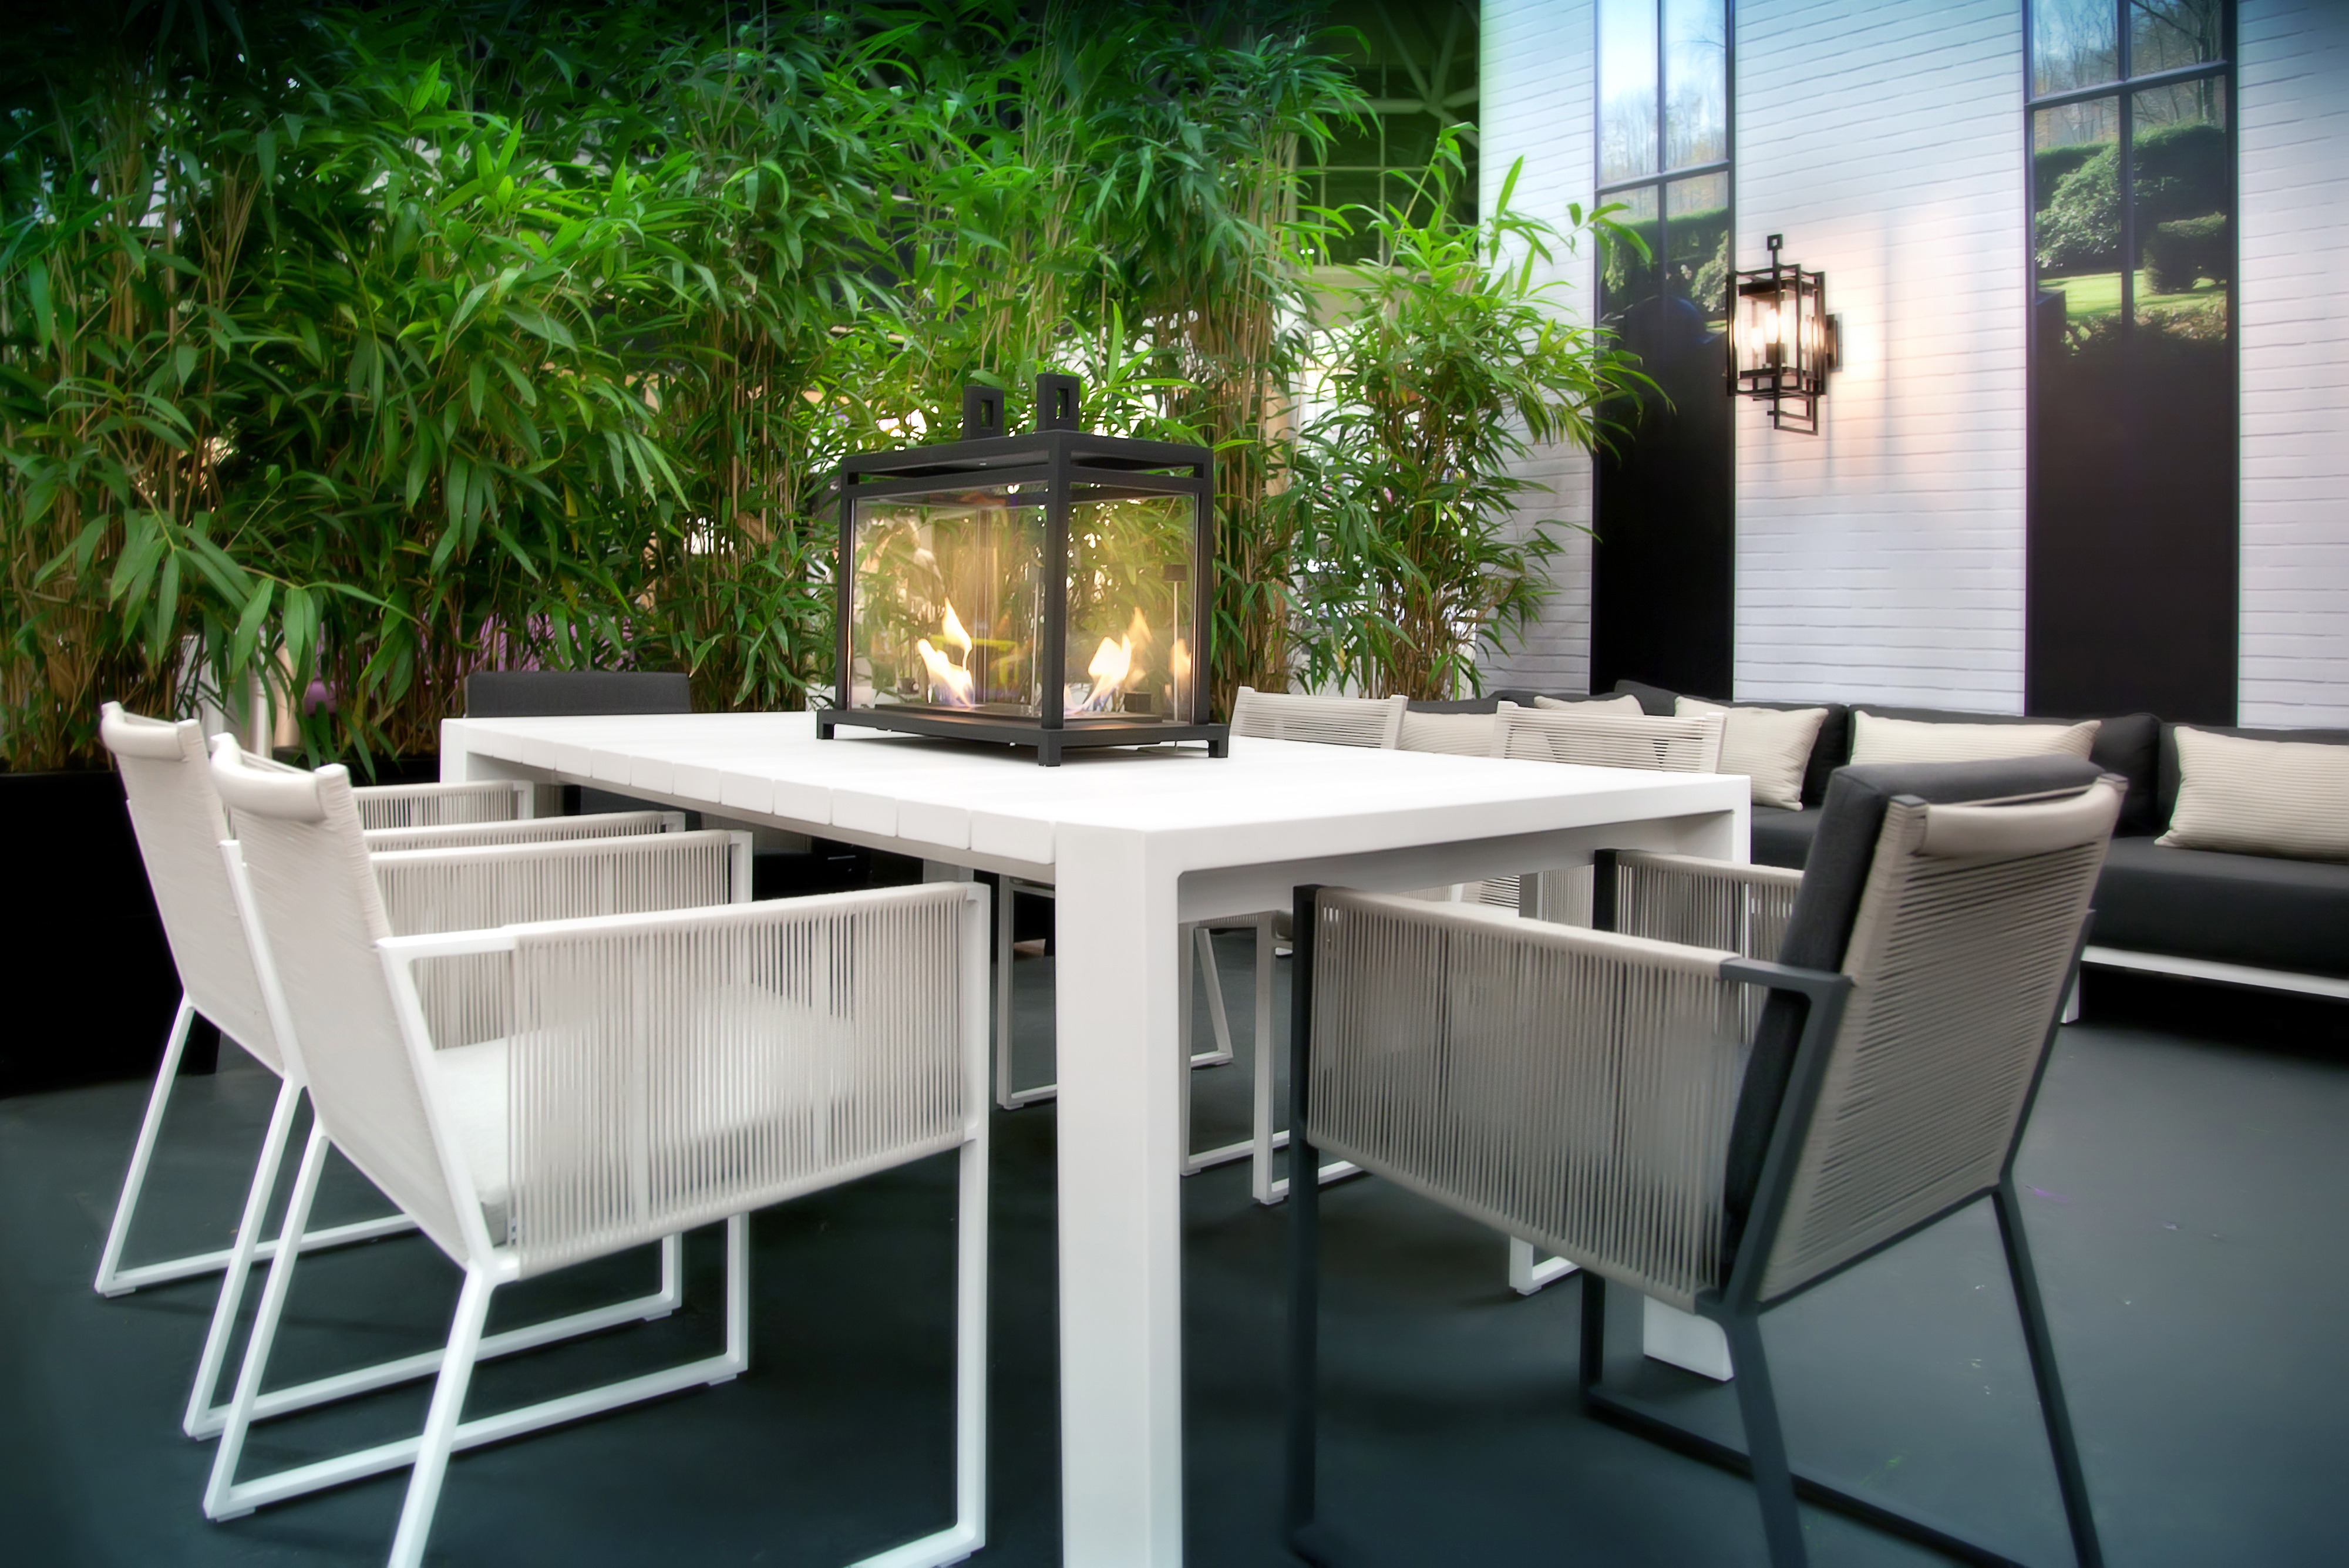 Onland Outdoor Furniture Home Ivy And Anna Outdoor Living